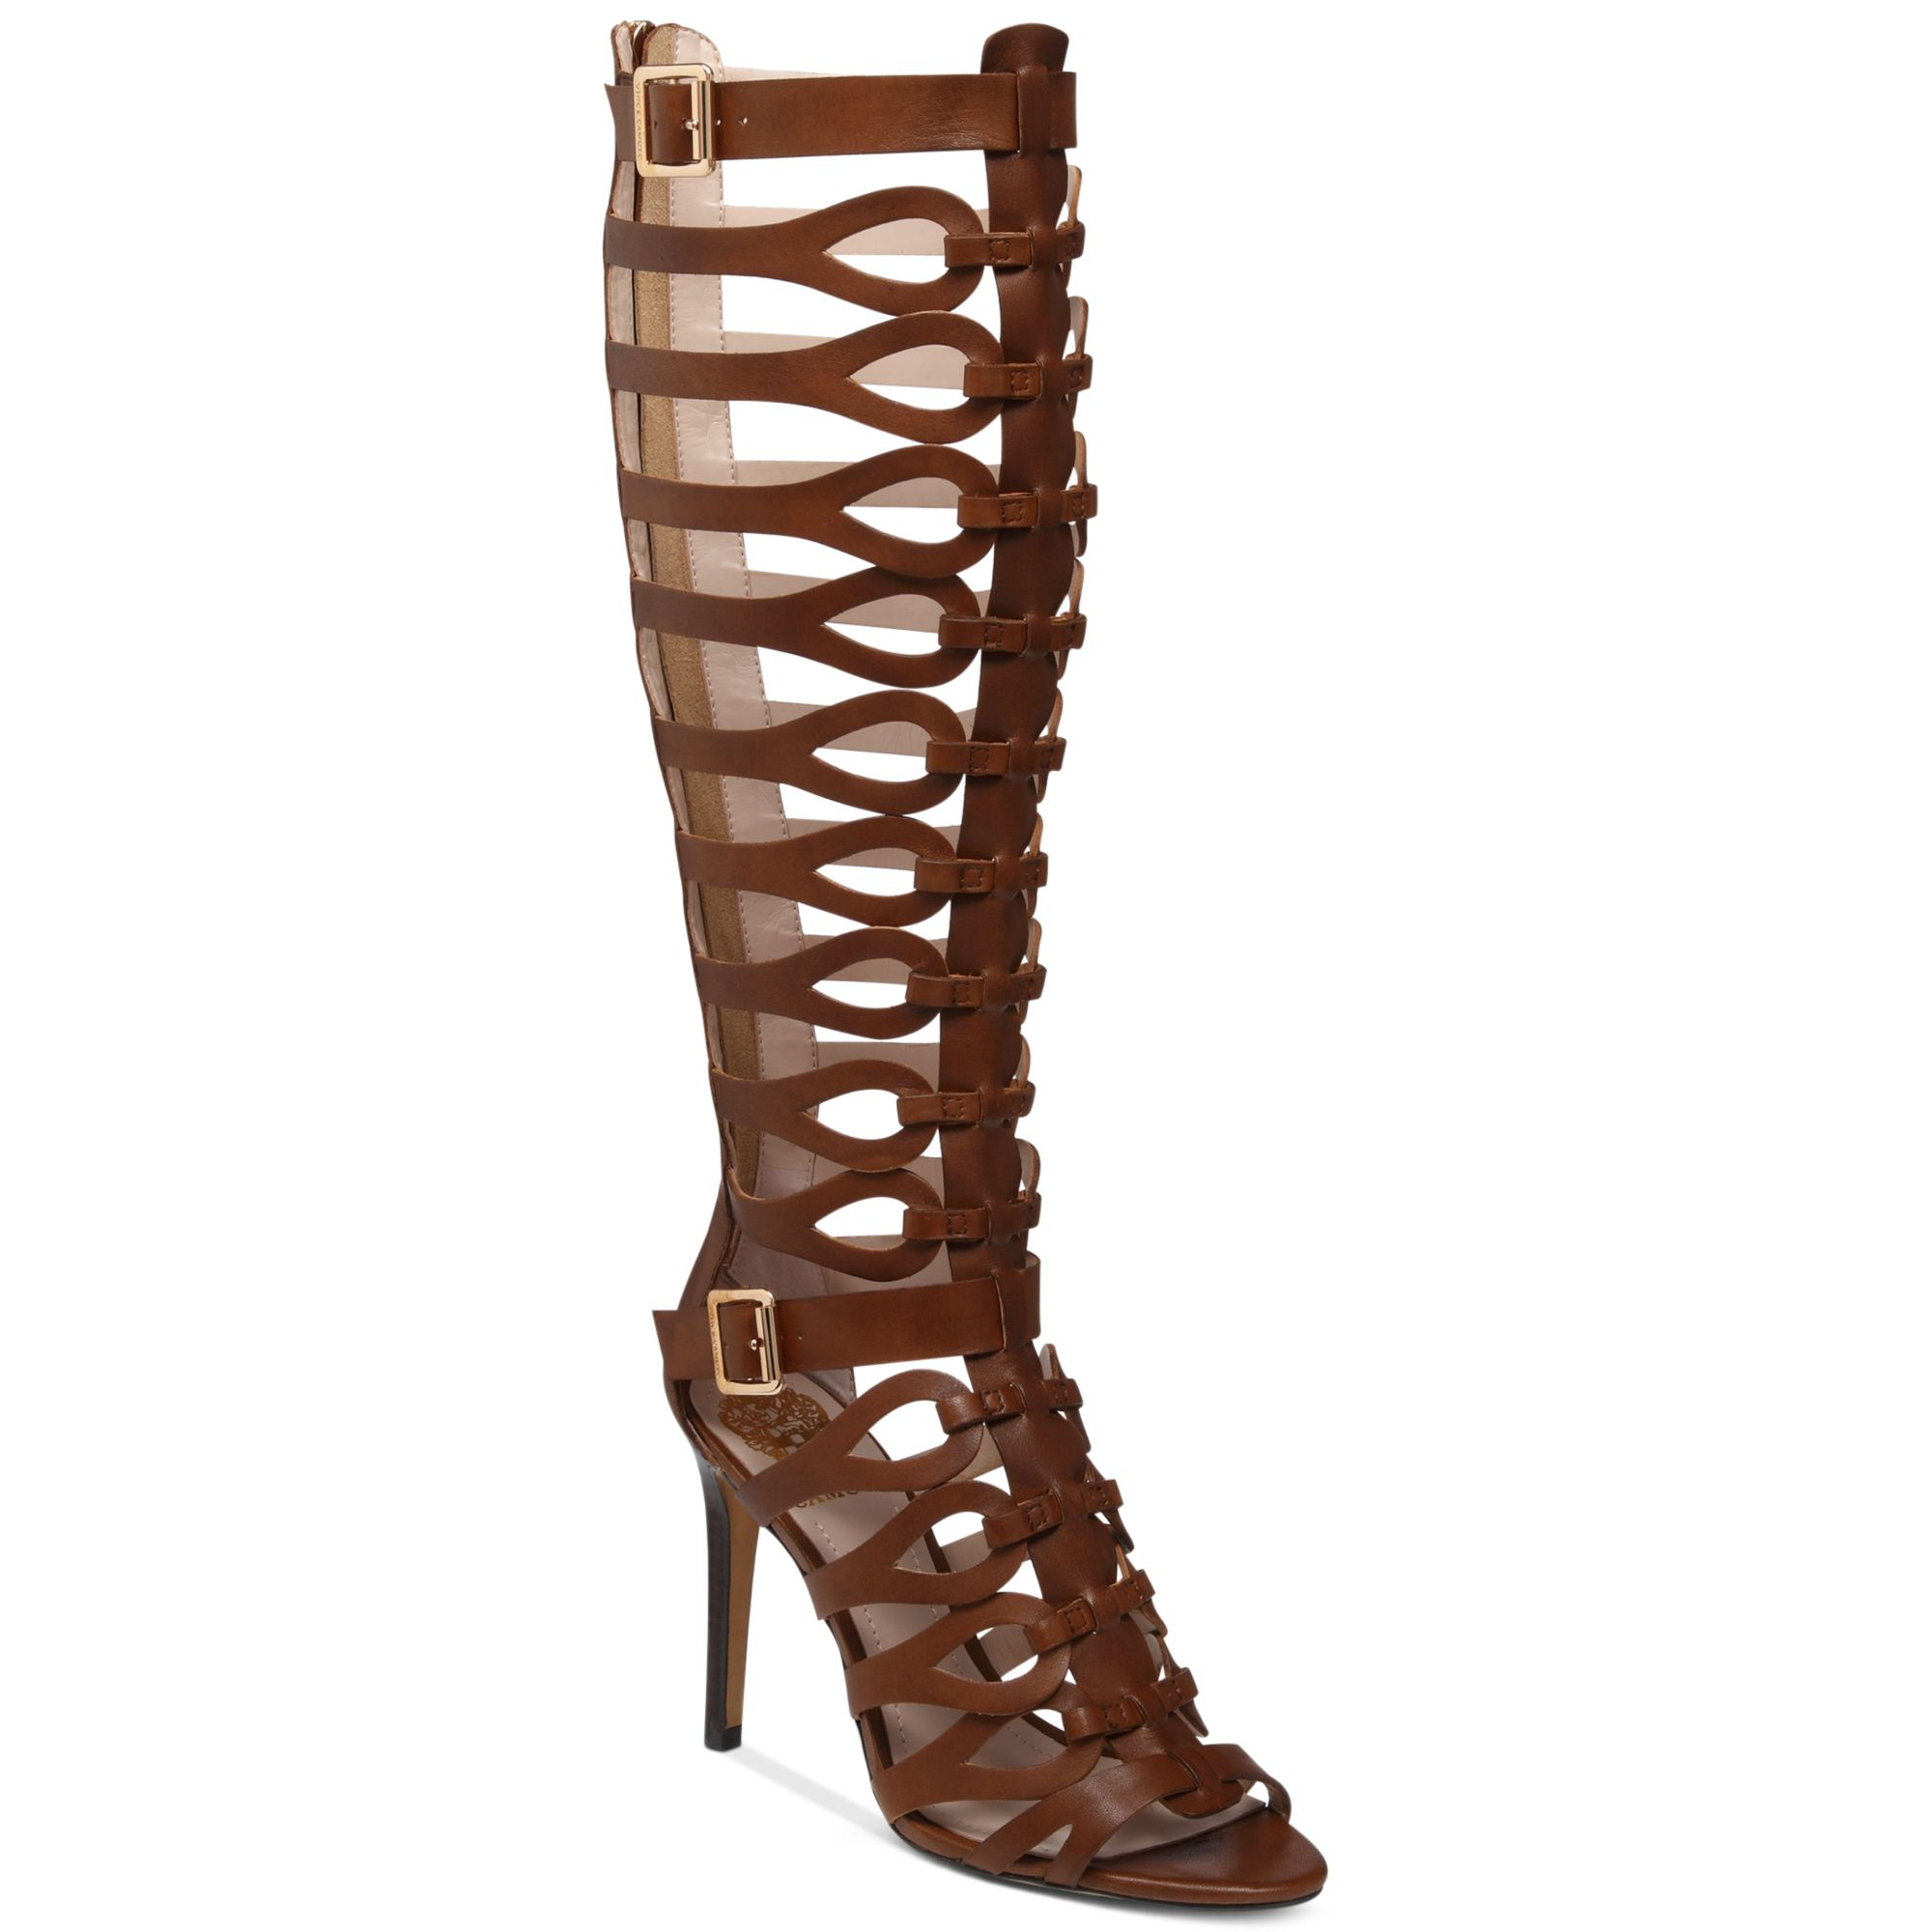 Lyst Vince Camuto Omera Tall Gladiator Heel Sandals In Brown